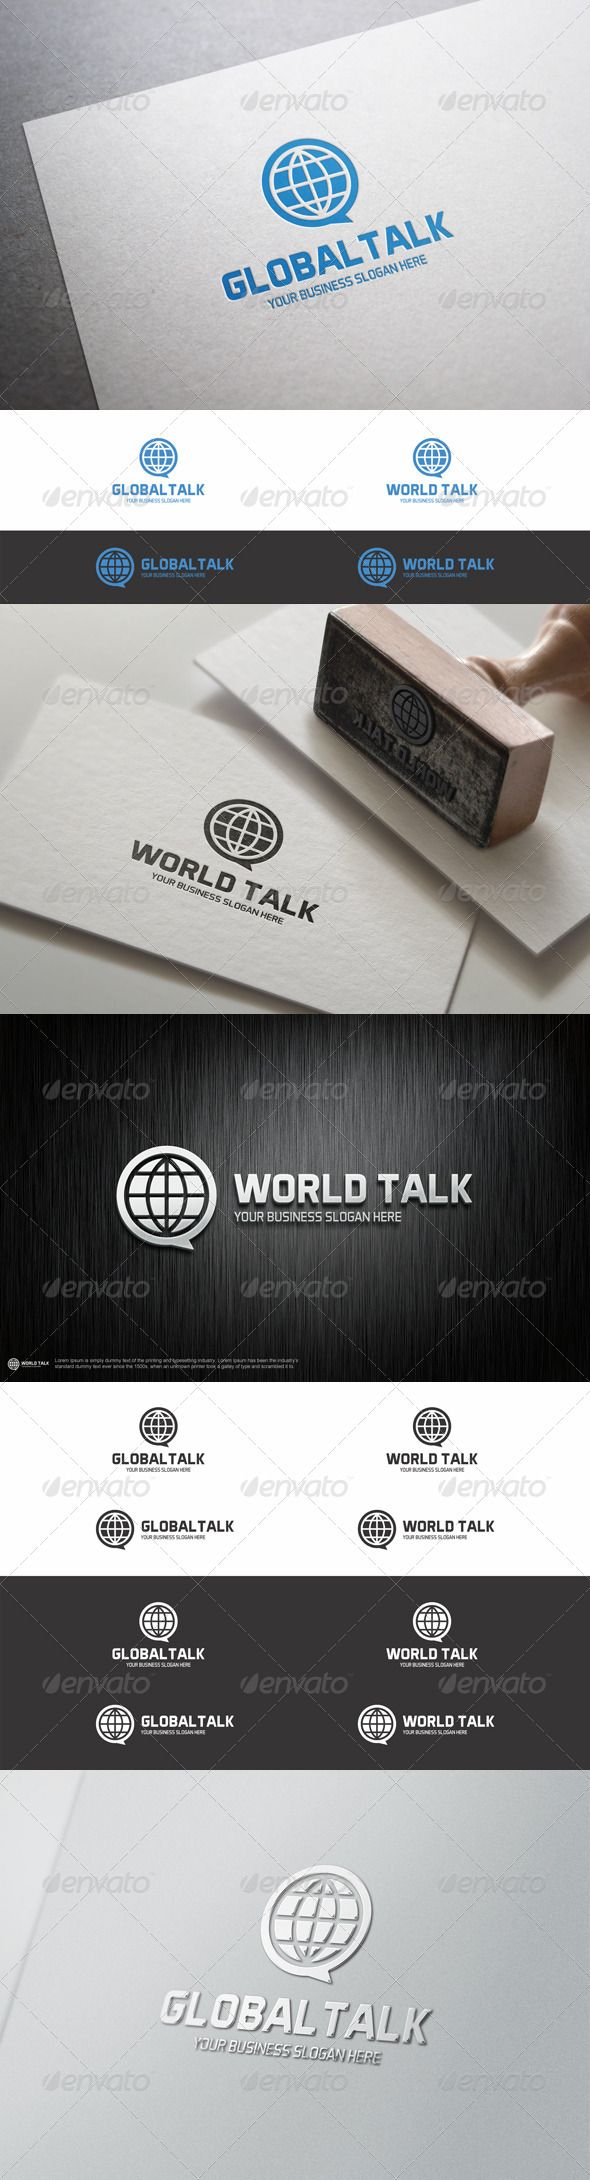 45 best Translation images on Pinterest | Awesome logos, Corporate ...